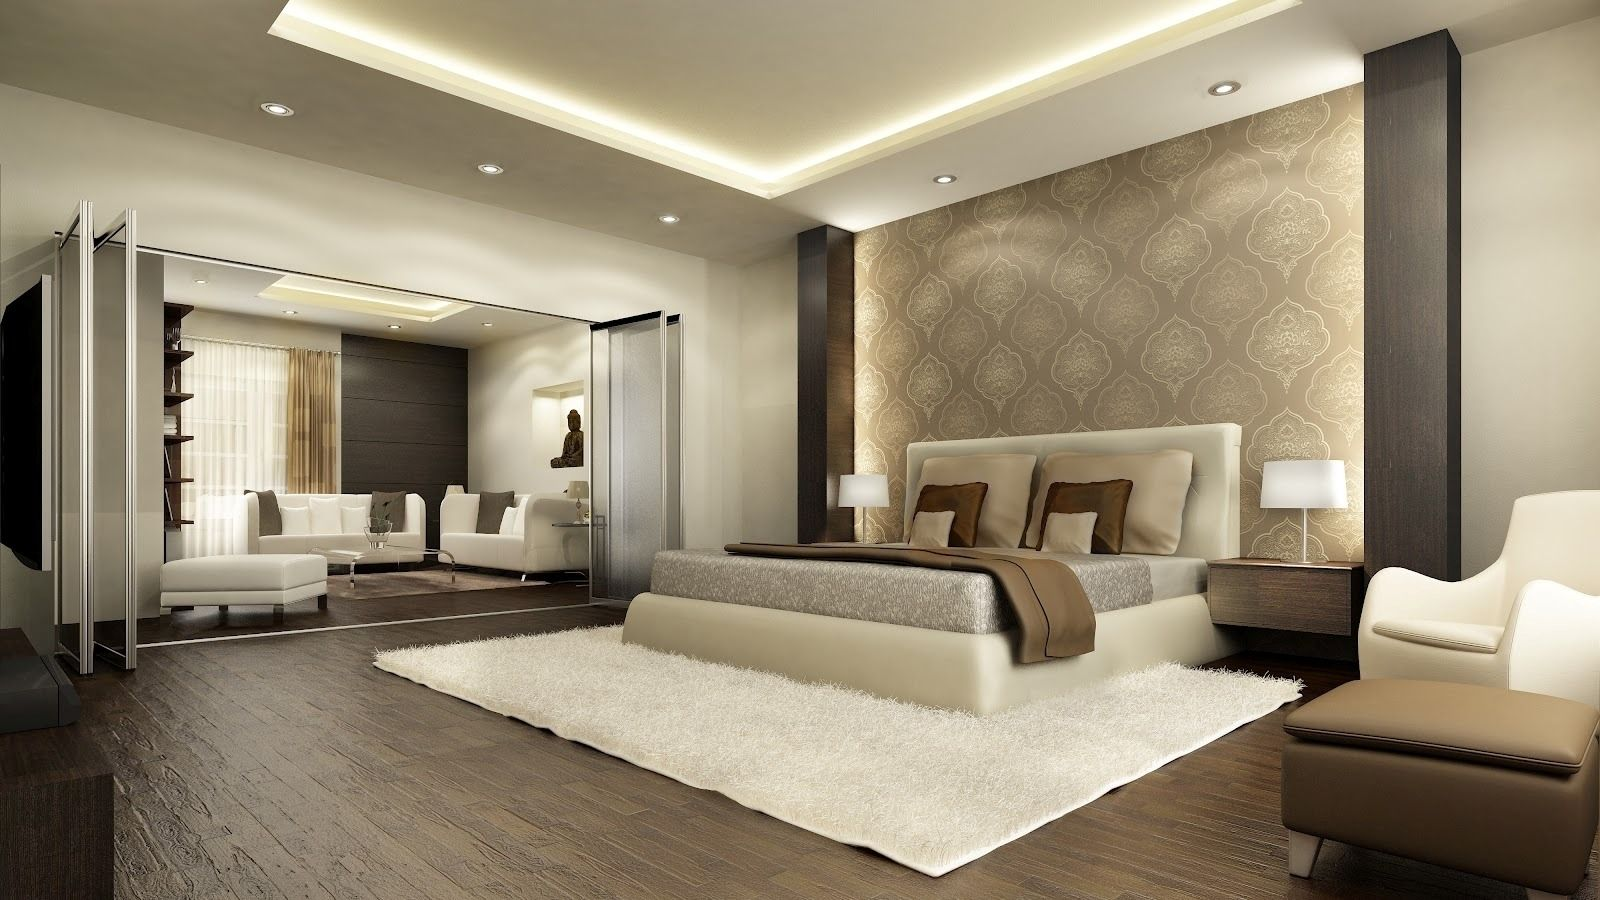 10 Modern Luxury Master Bedroom Designs For Your Home Luxury